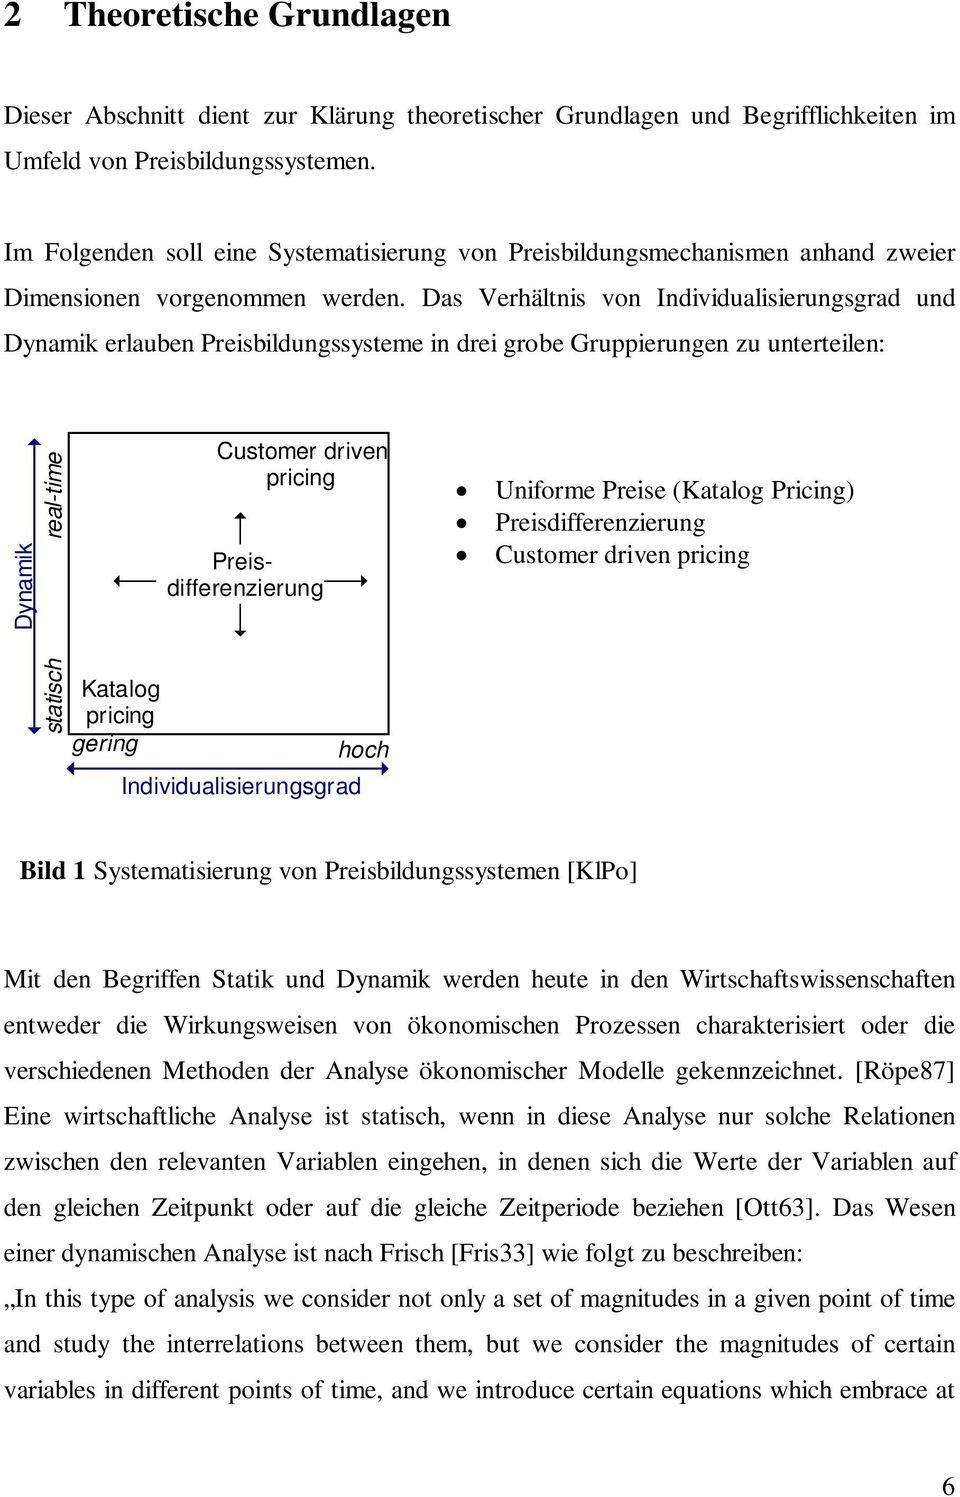 Das Verhältnis von Individualisierungsgrad und Dynamik erlauben Preisbildungssysteme in drei grobe Gruppierungen zu unterteilen: Dynamik statisch real-time Katalog pricing gering Customer driven